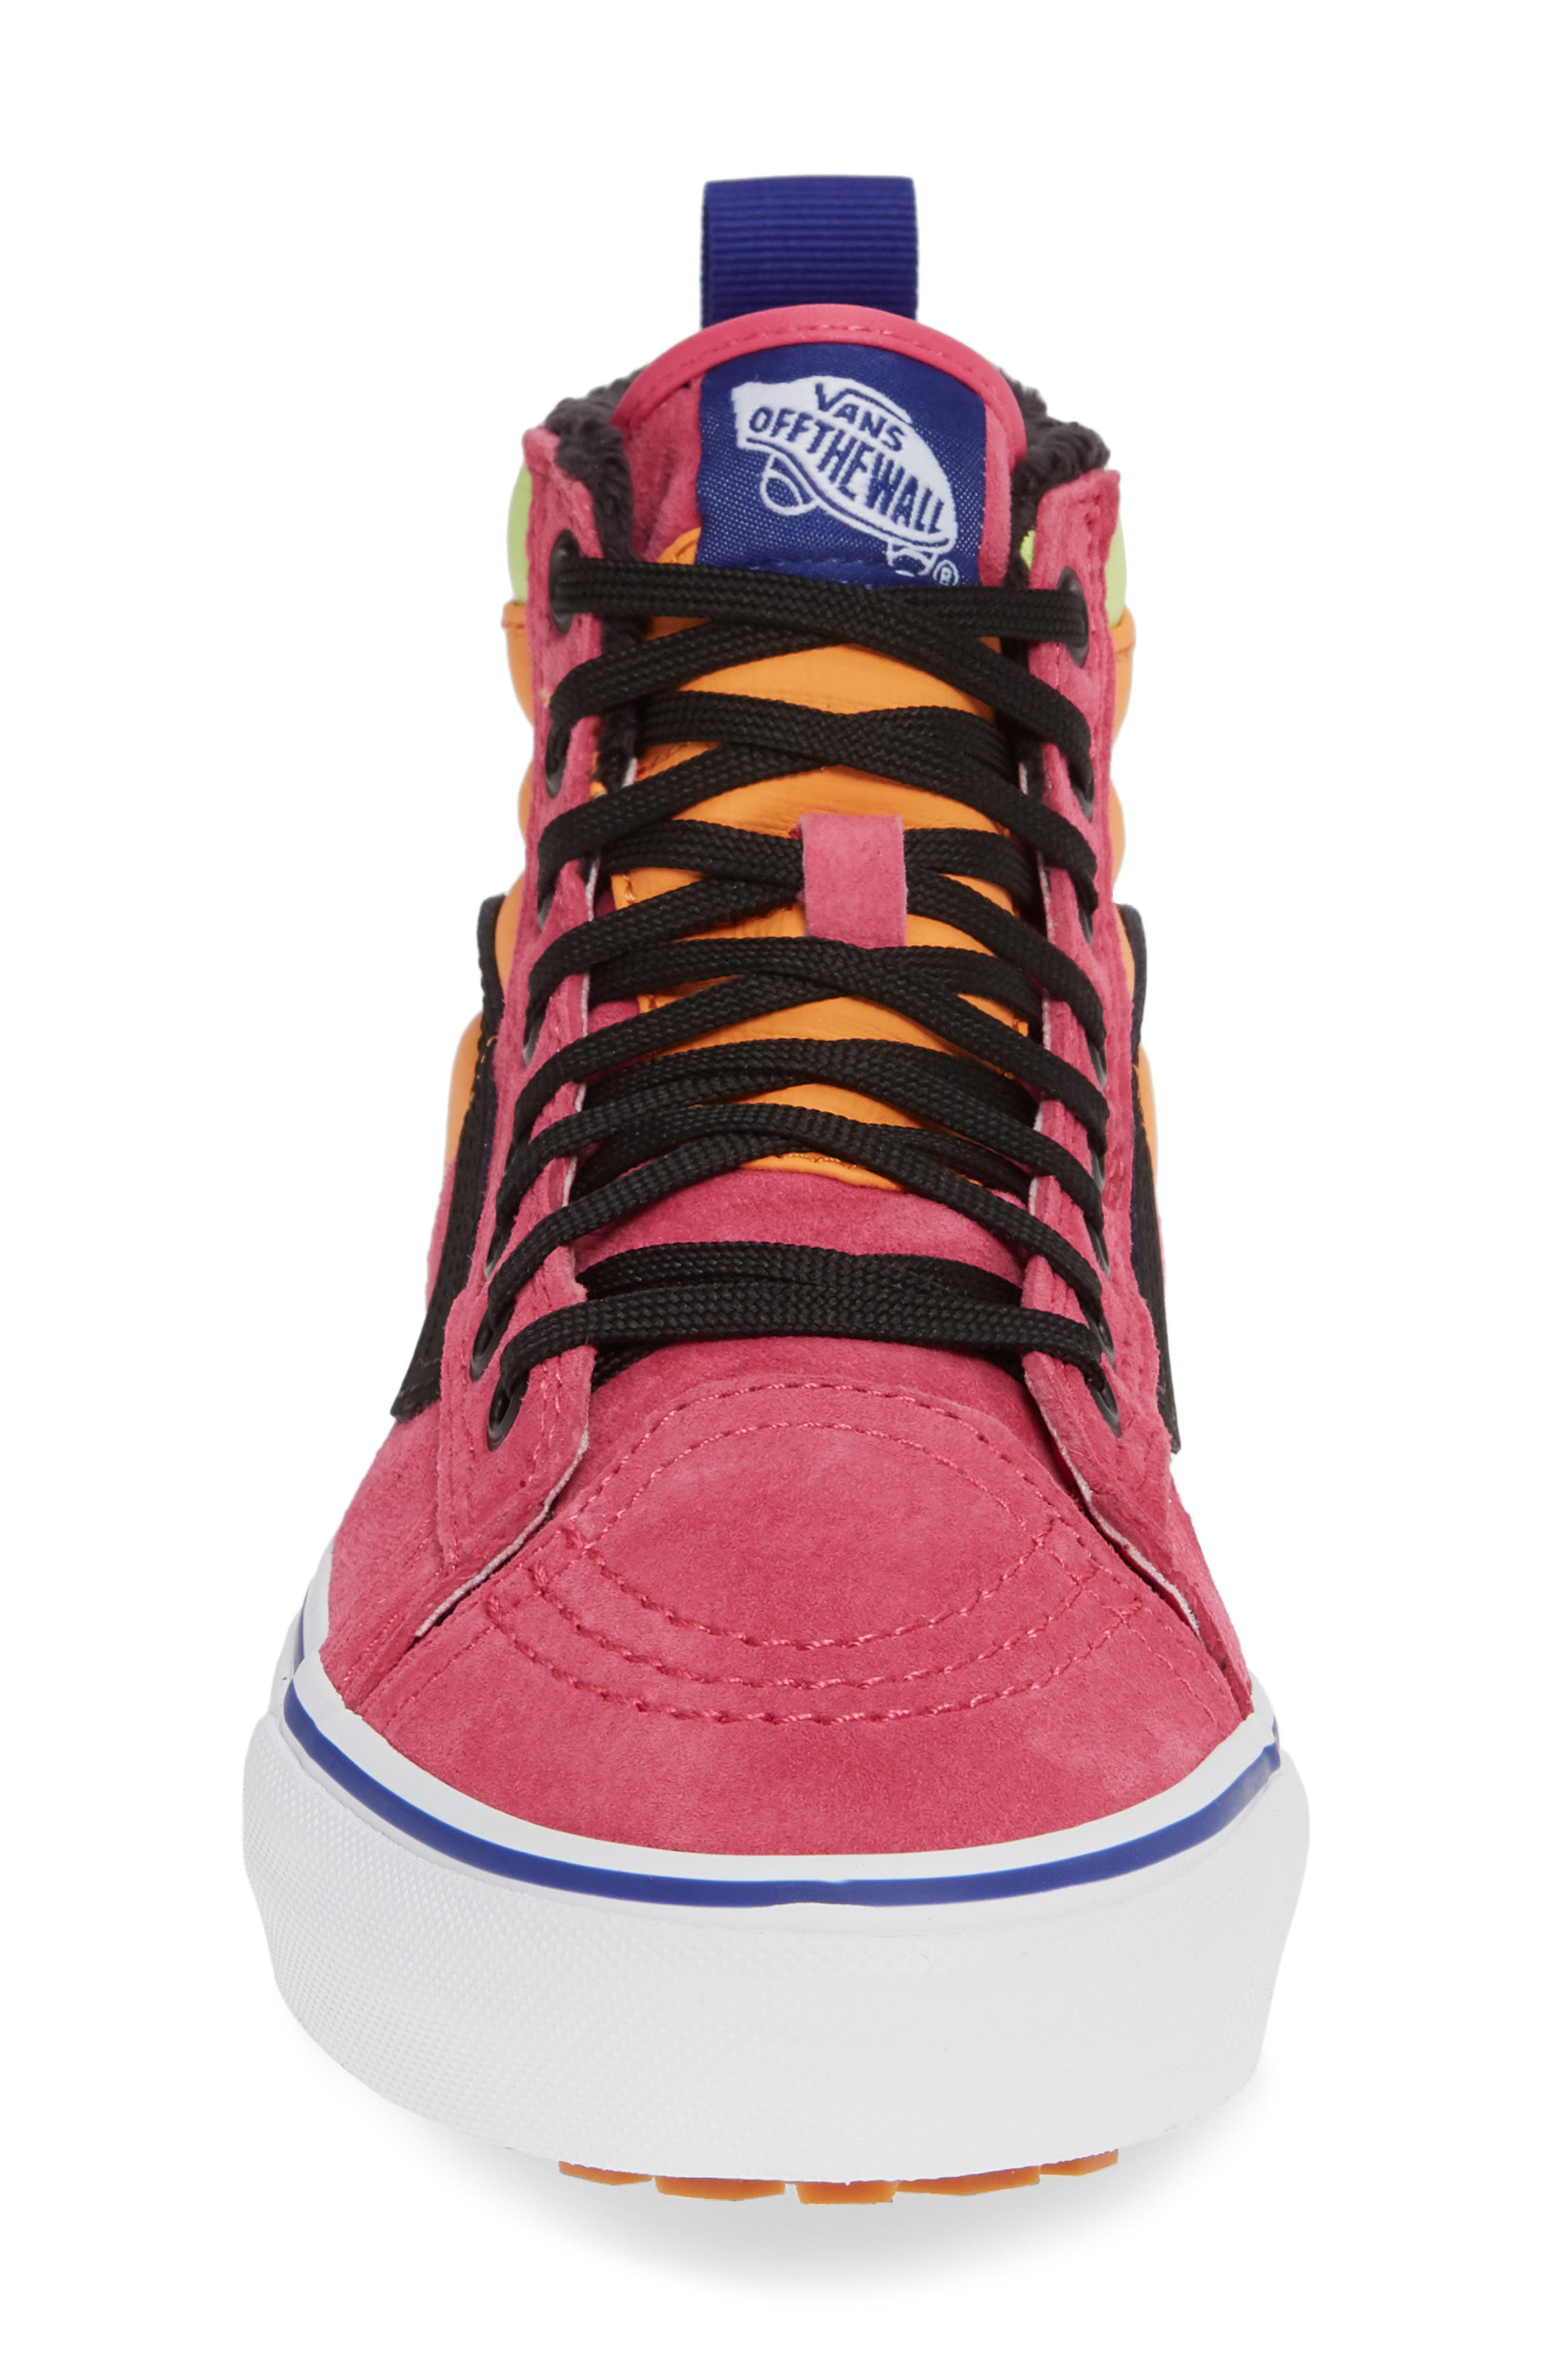 VANS, Sk8-Hi 46 MTE DX Sneaker, Alternate thumbnail 4, color, PINK YARROW/ TANGERINE/ BLACK